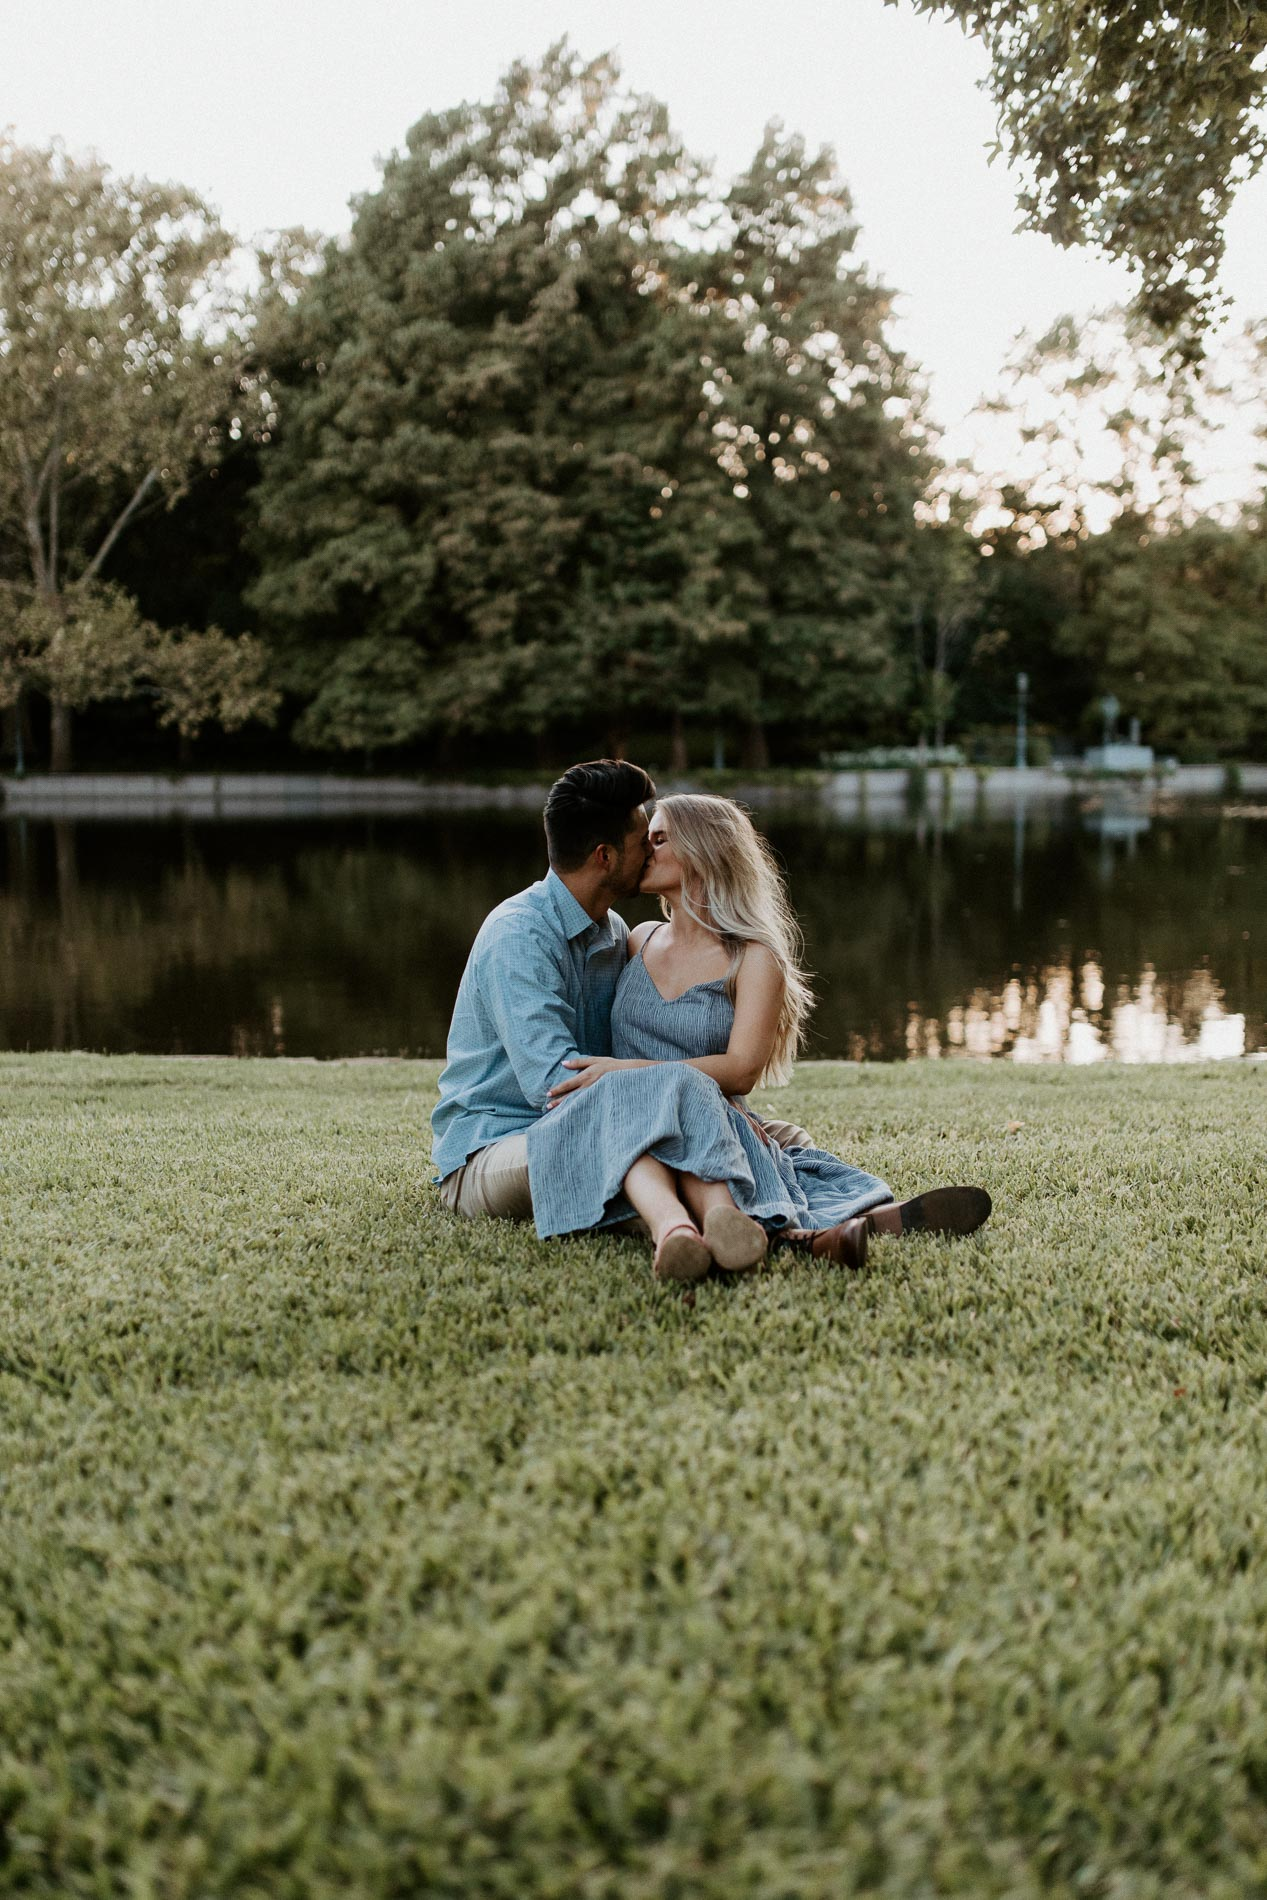 Couple kissing while sitting next to each other on the ground of a park